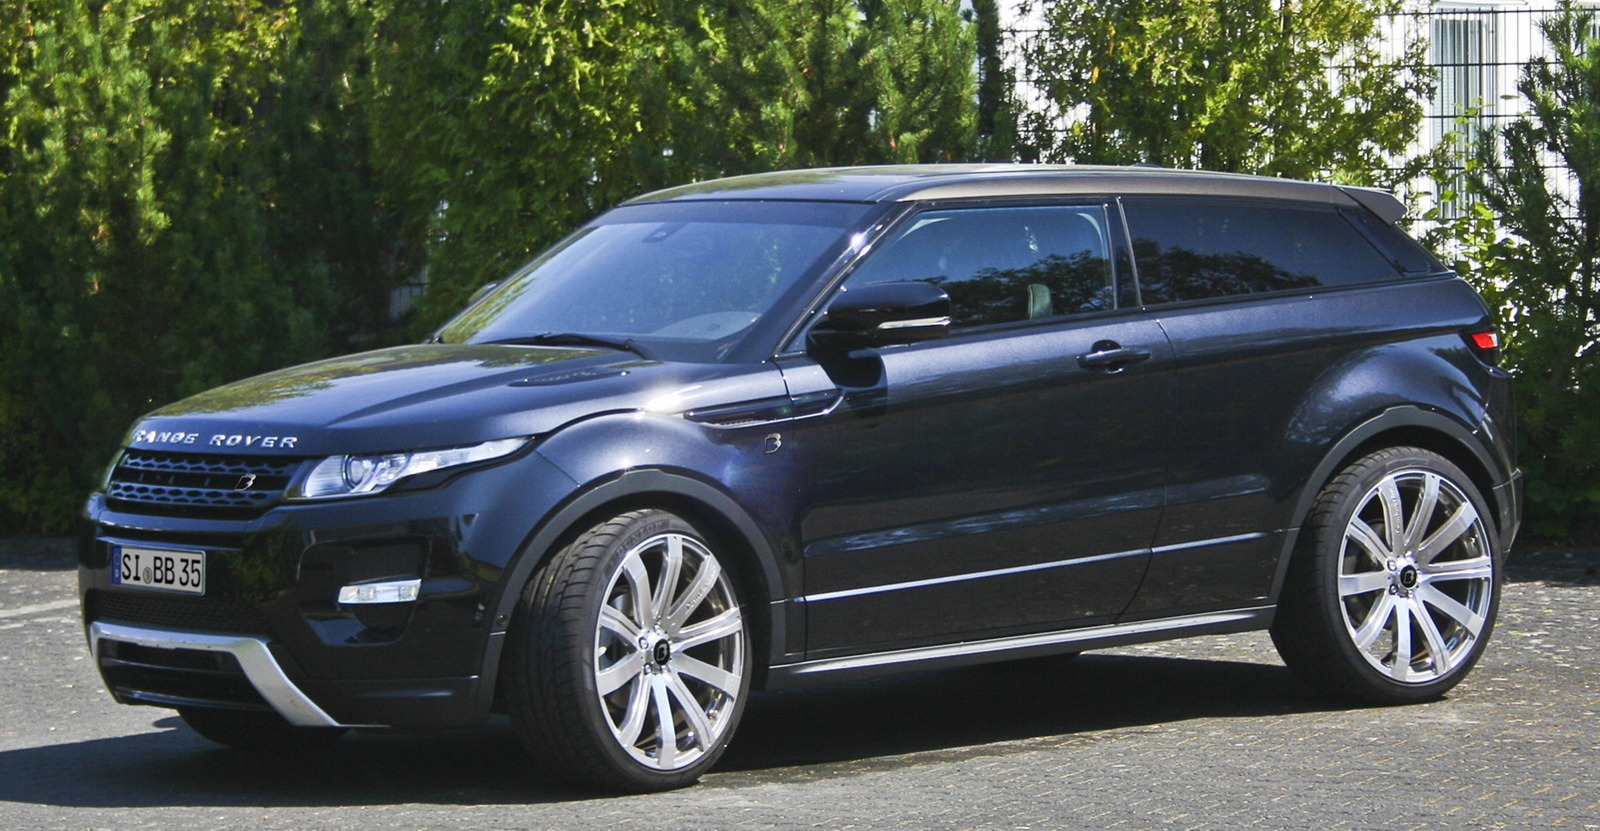 Range Rover Evoque gets power boost from B&B